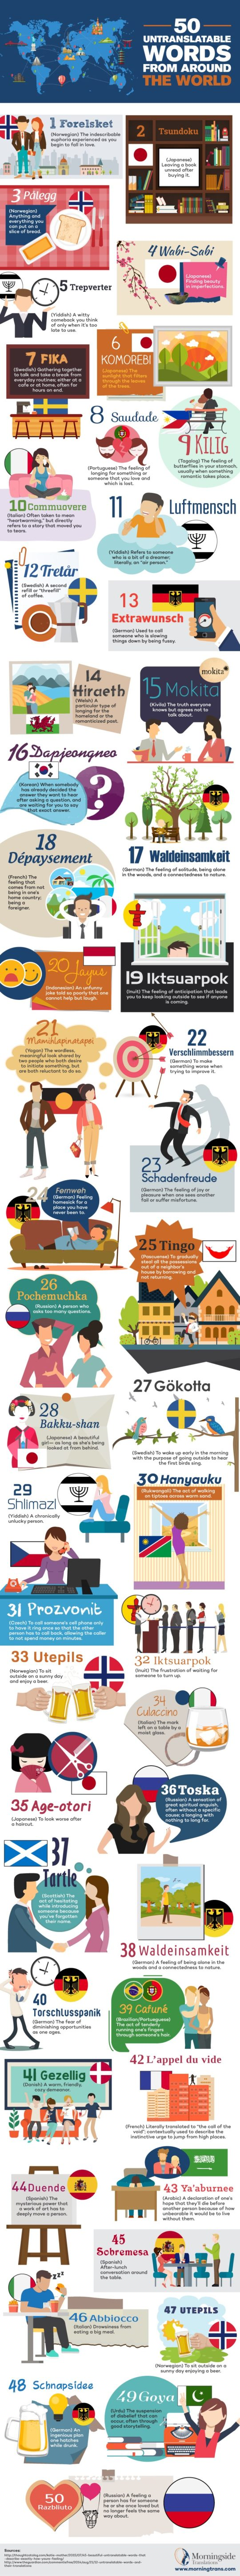 Untranslatable-words-from-around-the-world-full-infographic-540x5791